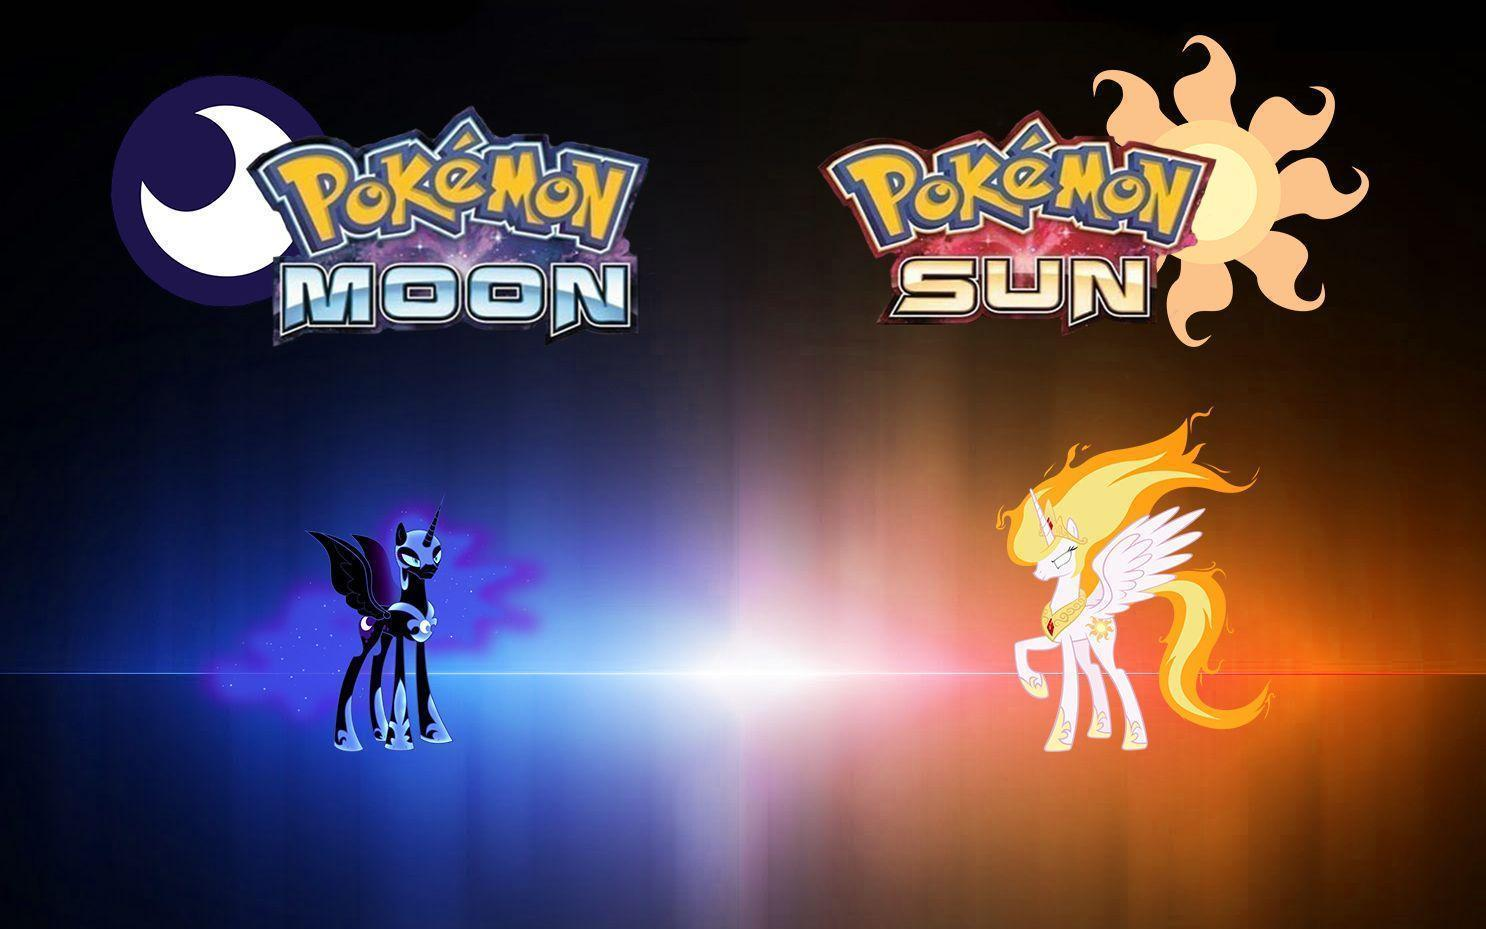 Pokémon Sun And Moon Wallpapers - Wallpaper Cave